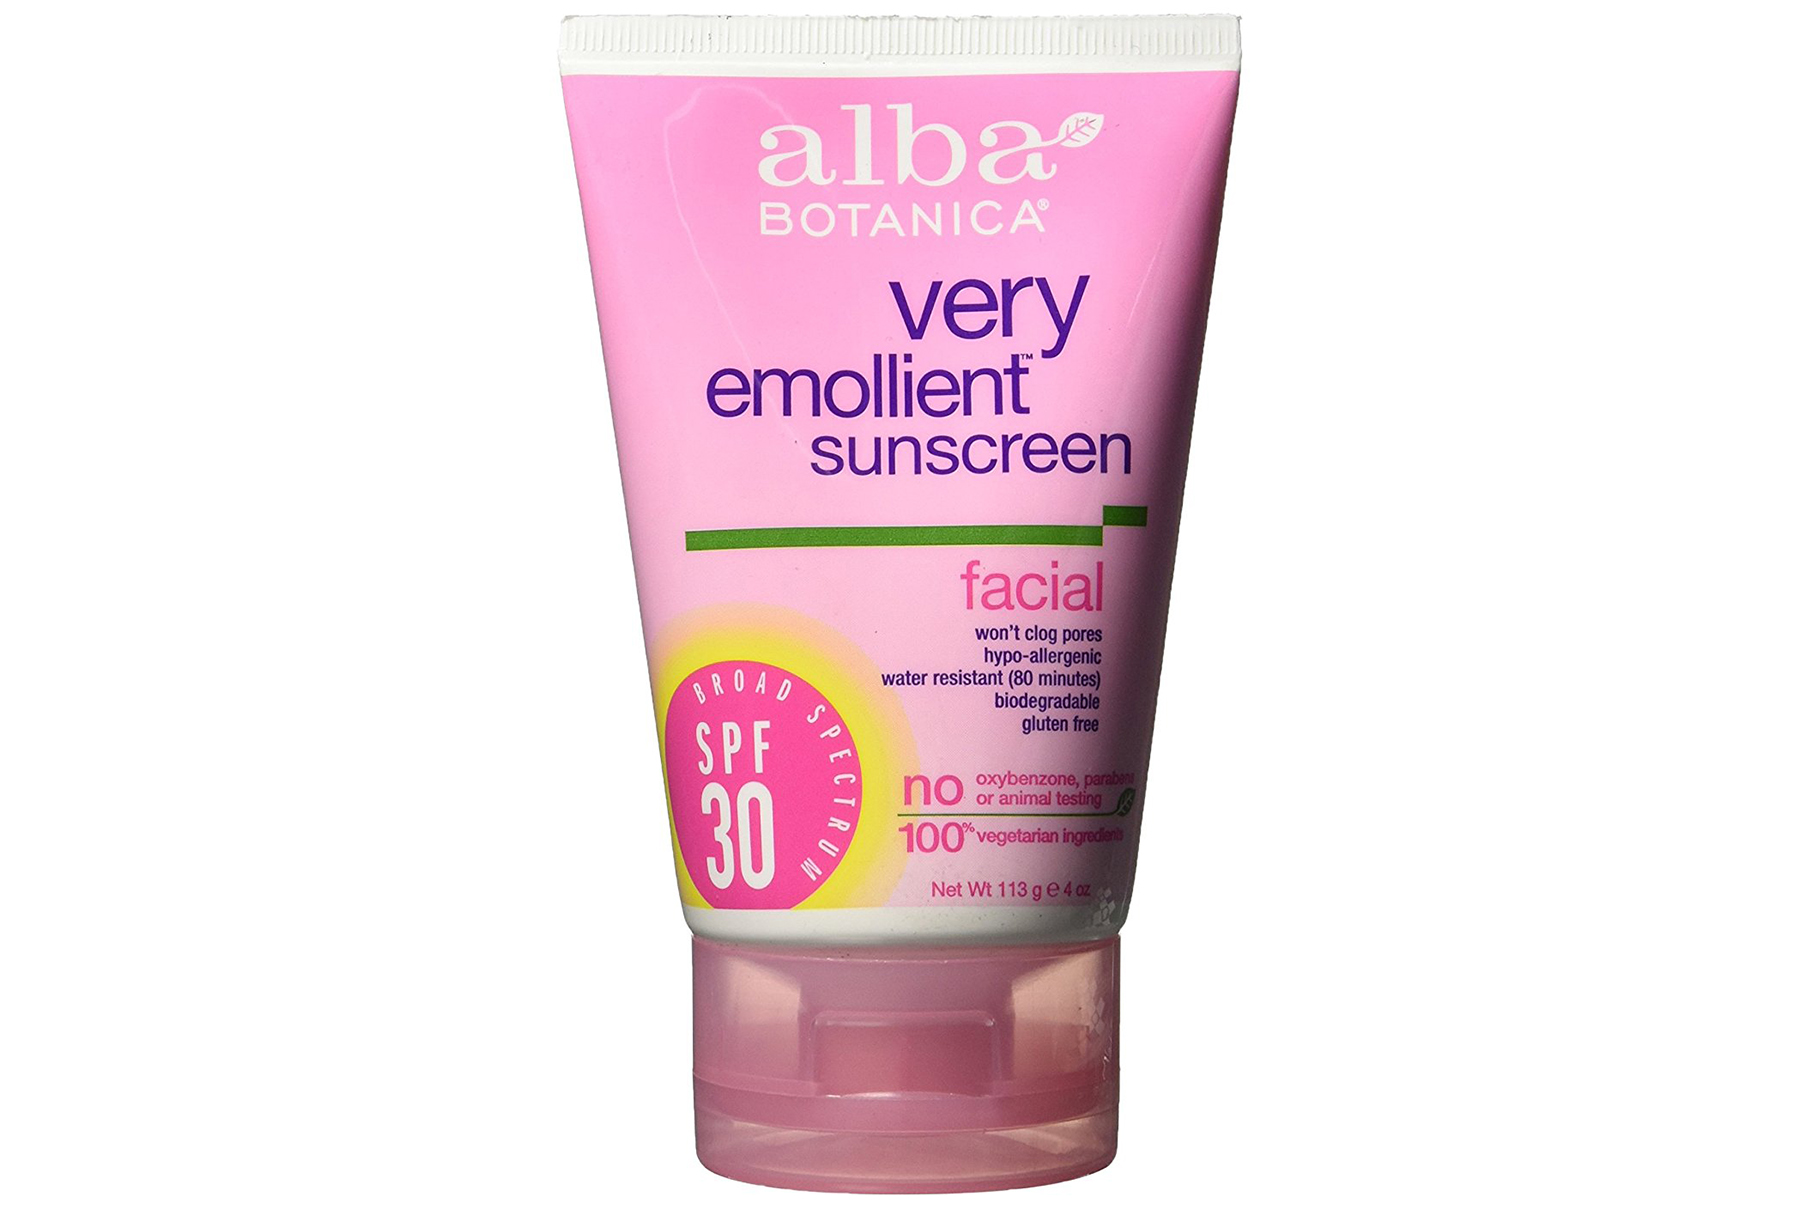 Alba Botanica Very Emollient Sunscreen Facial, SPF 30